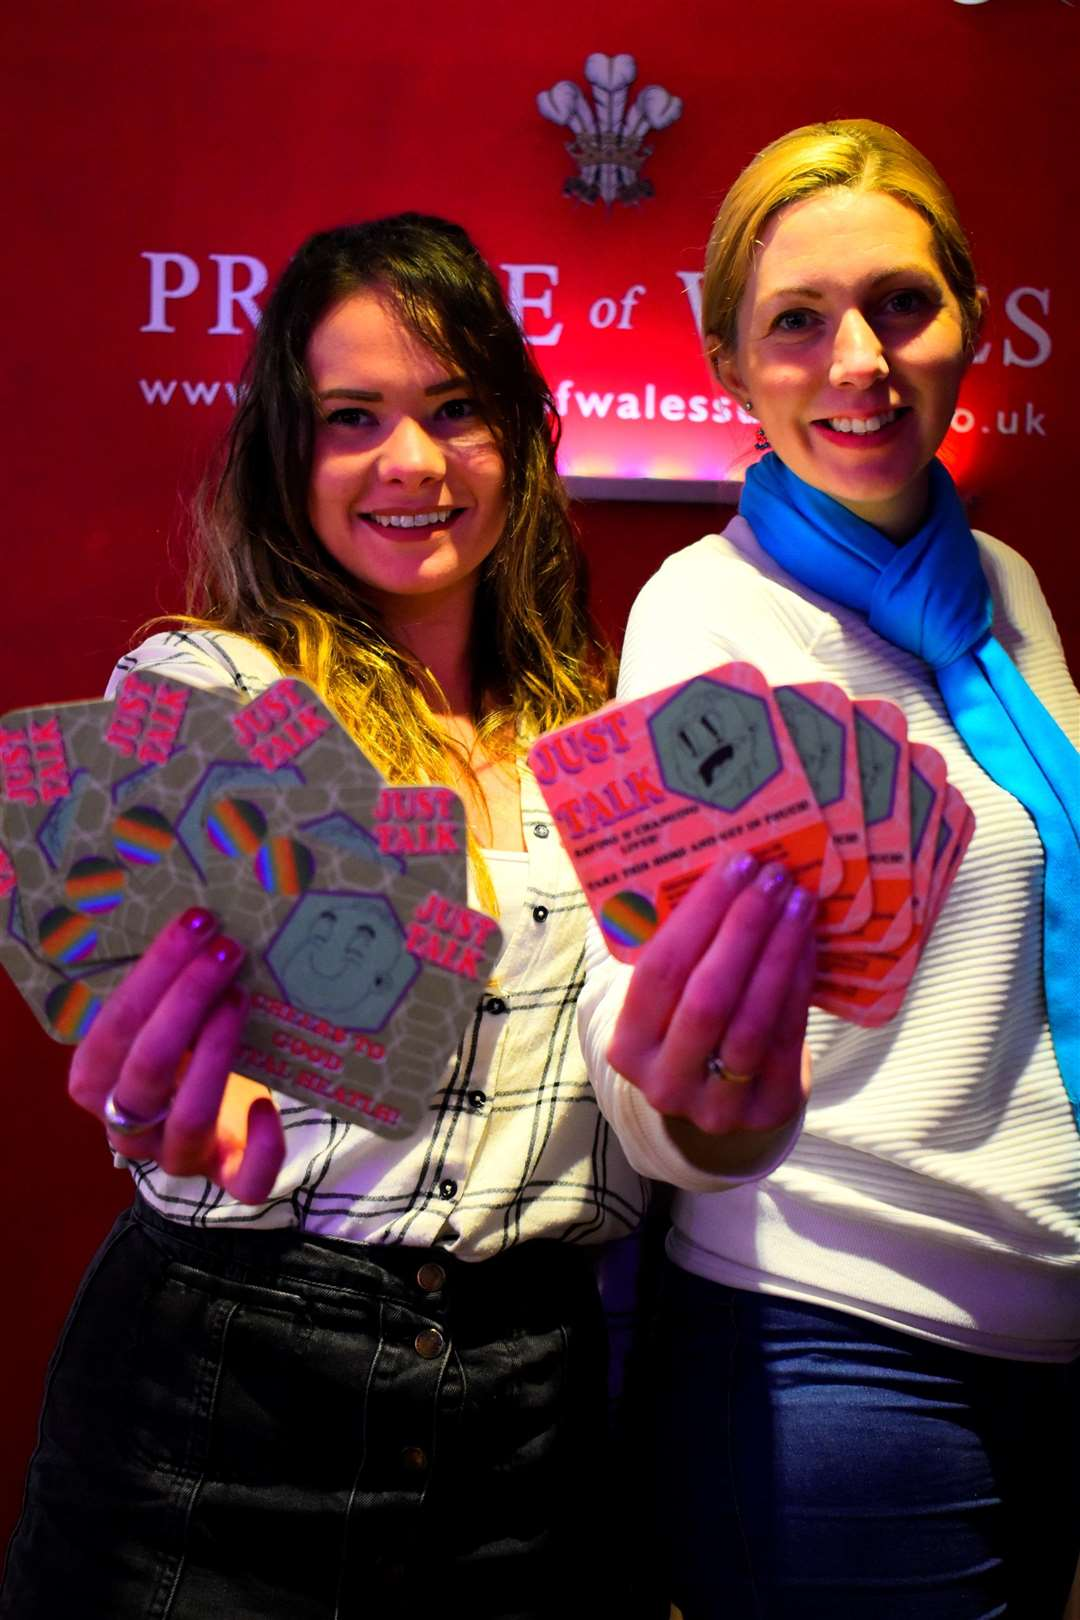 Lois Lovering and Natalie Wiggins with the Just Talk Campaign beer mats at the Prince of Wales pub. (1946846)